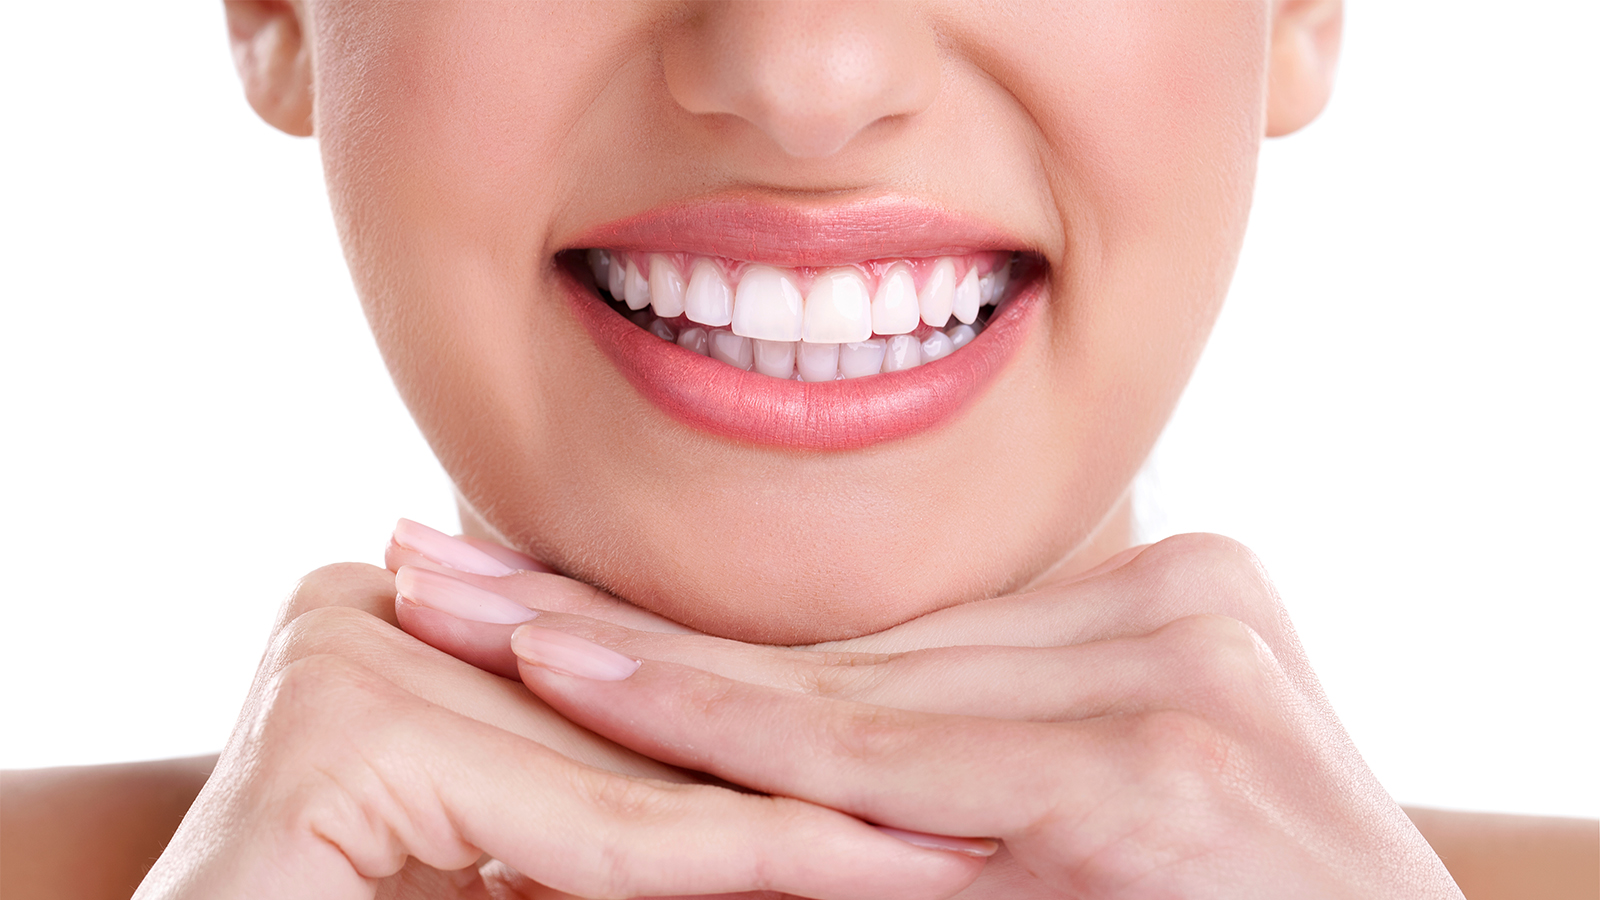 Teeth Smile Png Hd - Show Off Your Smile   Png Hd Teeth Smile, Transparent background PNG HD thumbnail